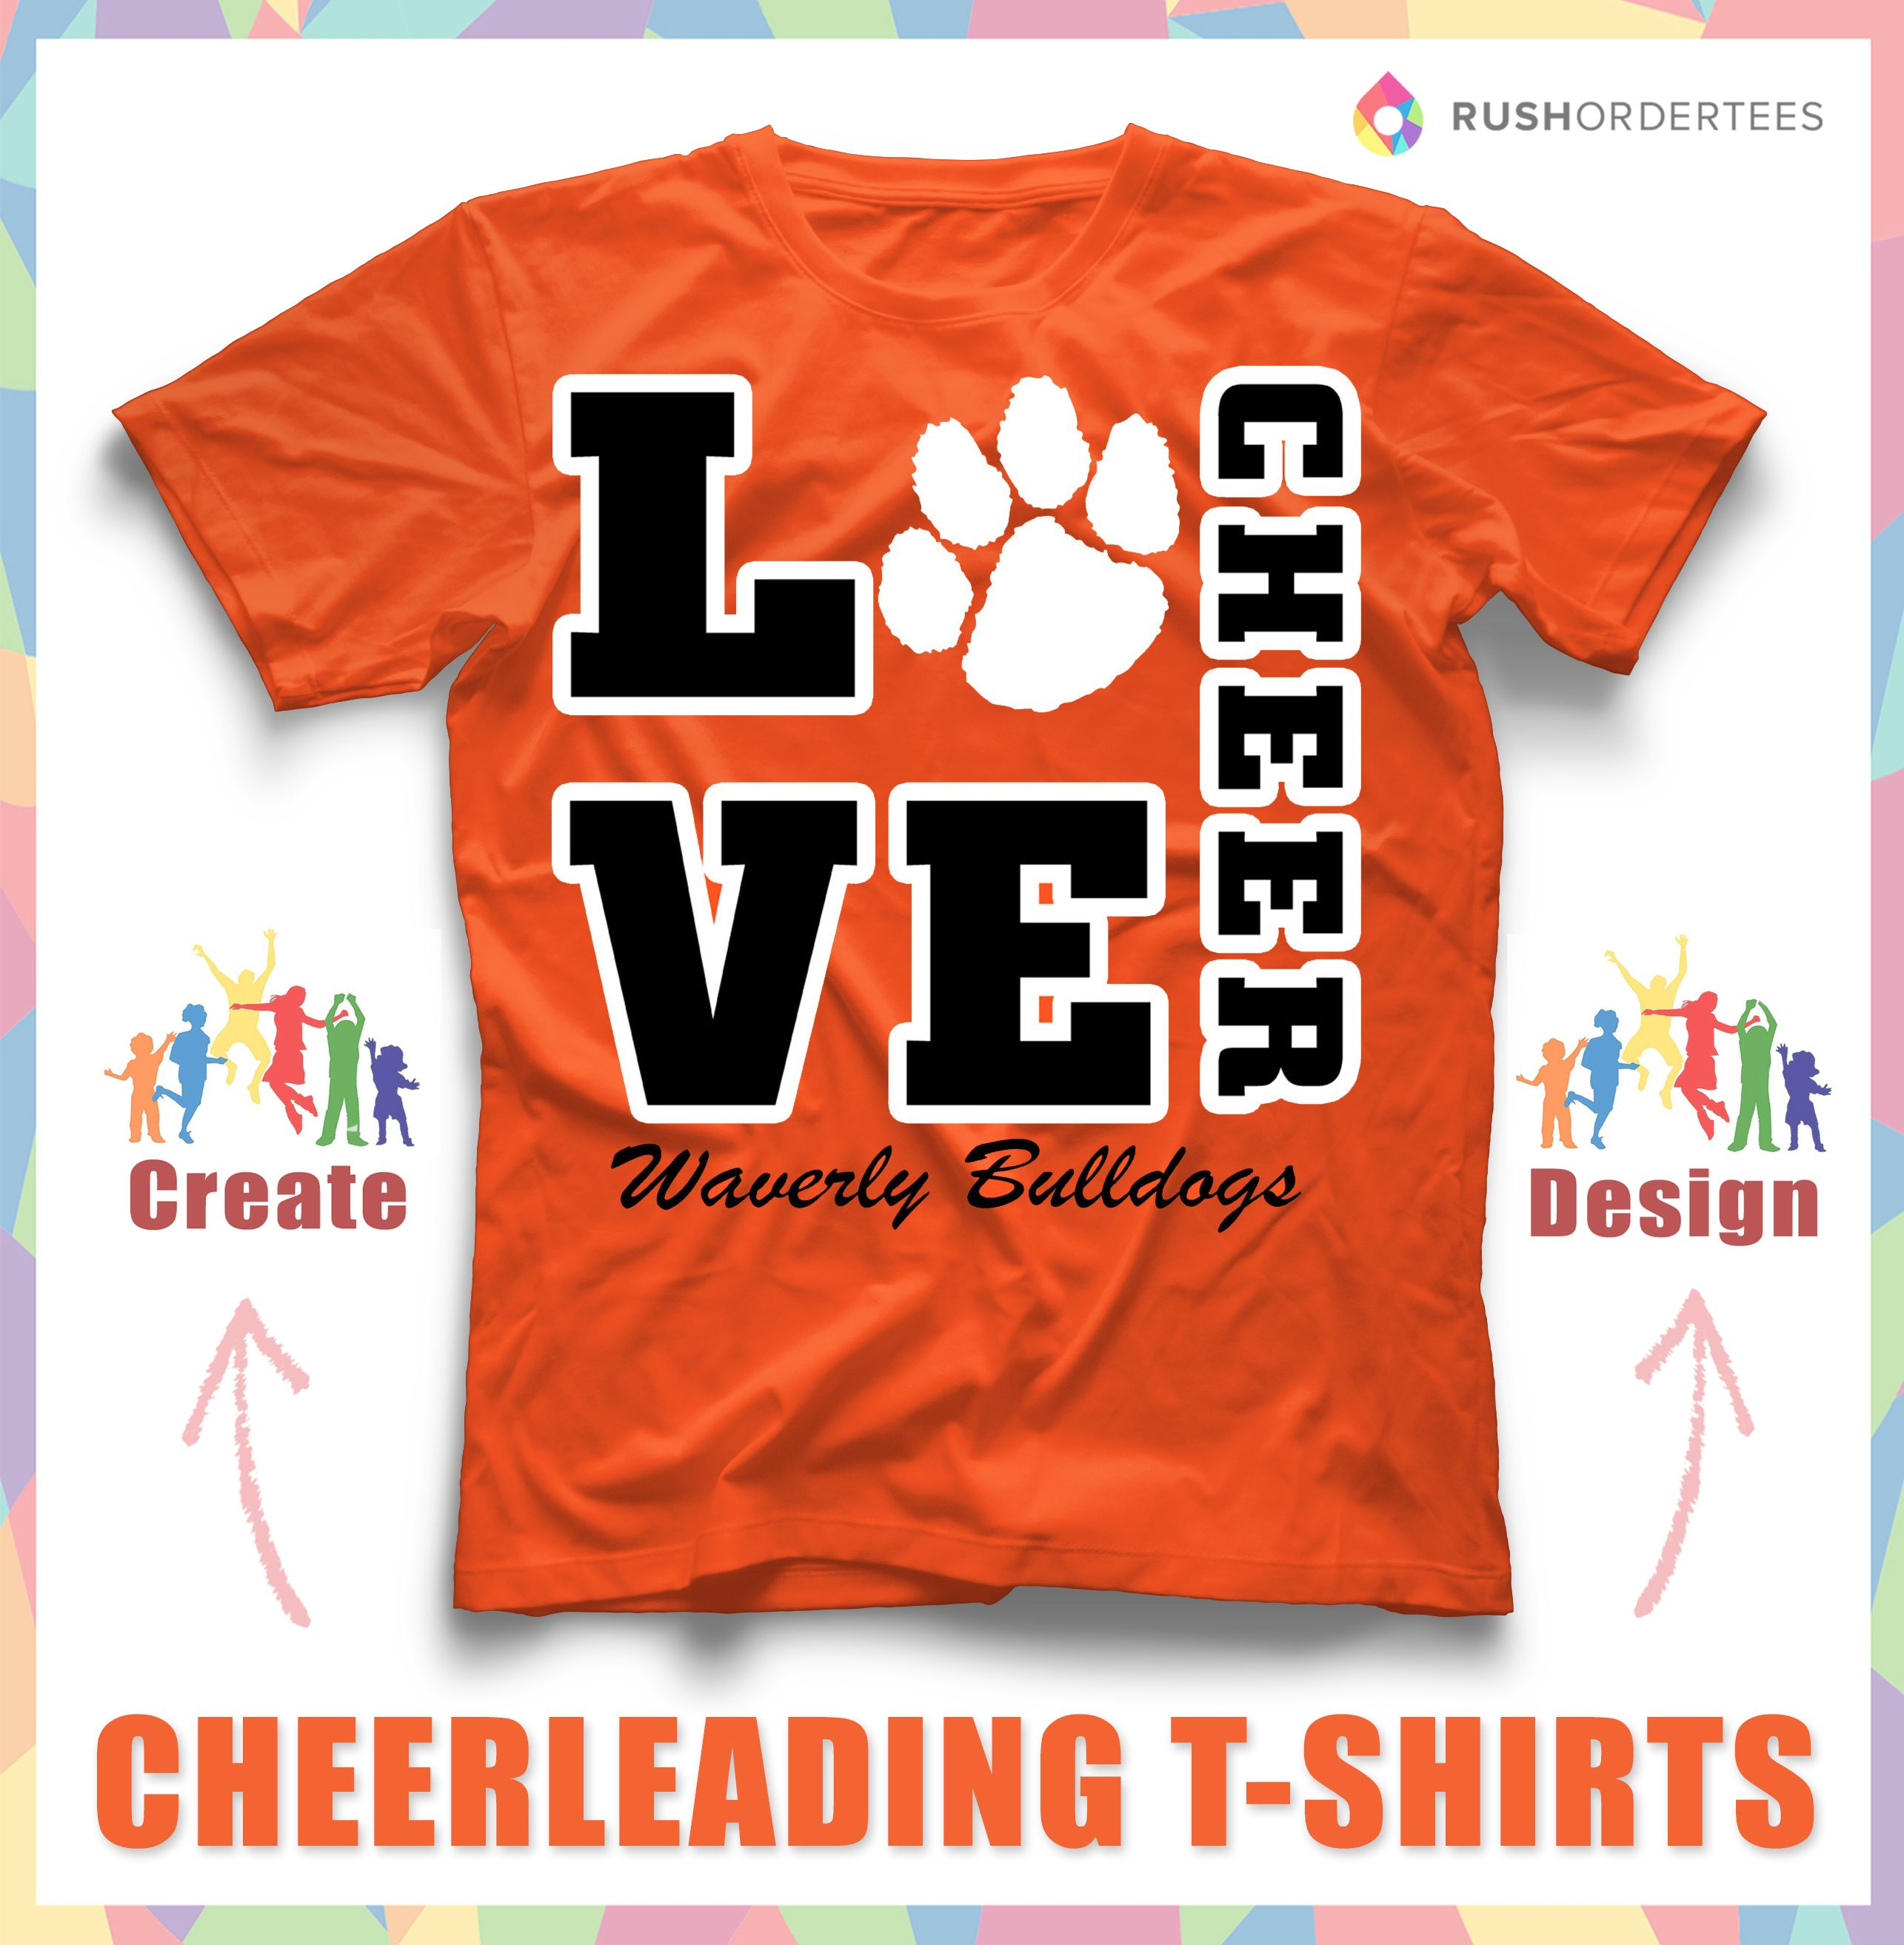 Love To Cheer Create Custom Cheerleading T Shirts For: cheerleading t shirt designs